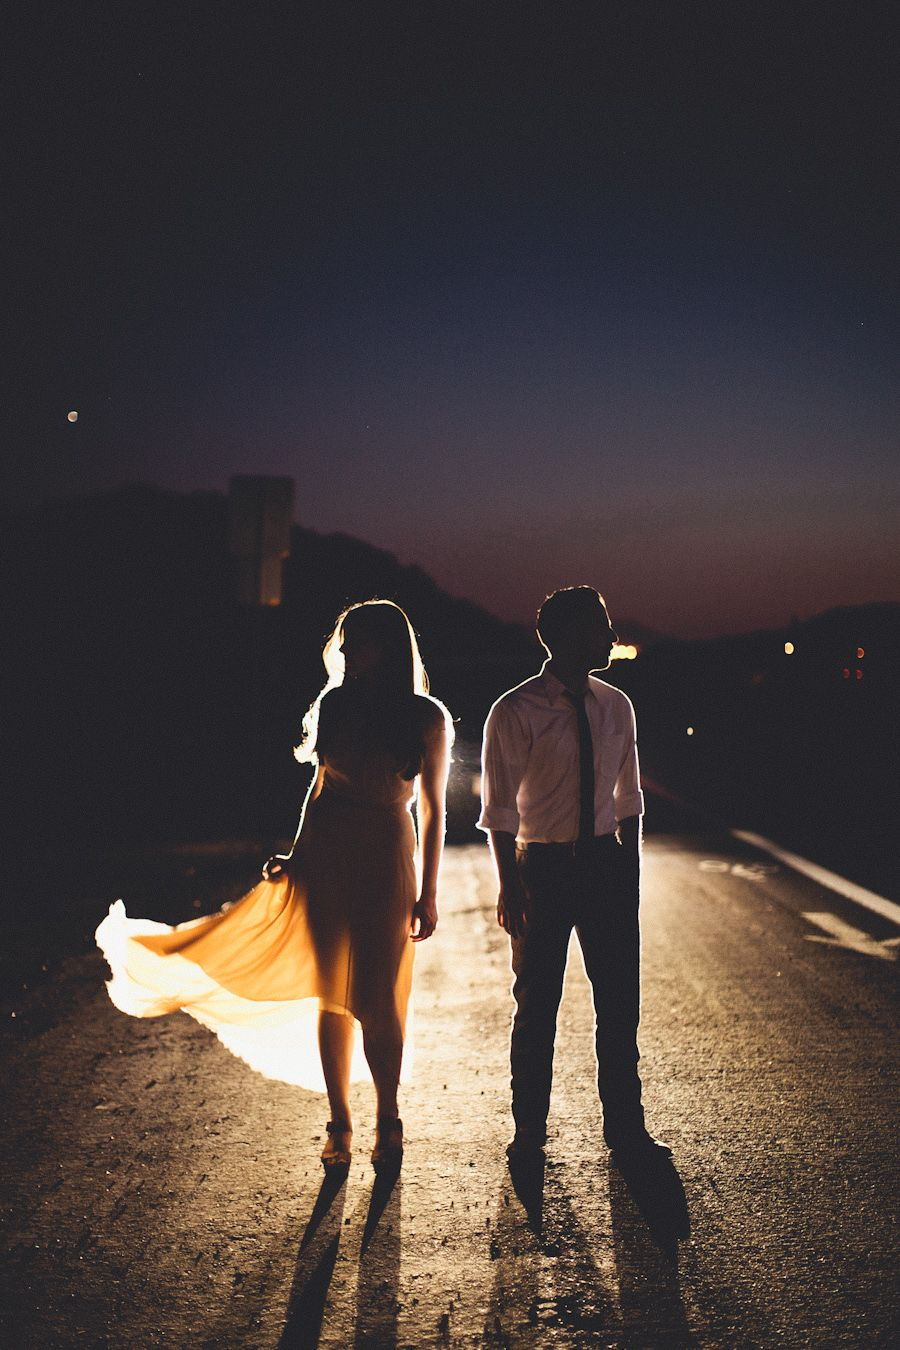 silhouette lighting definition. car lights from behind to create a silhouette this couple is awesome lighting definition i